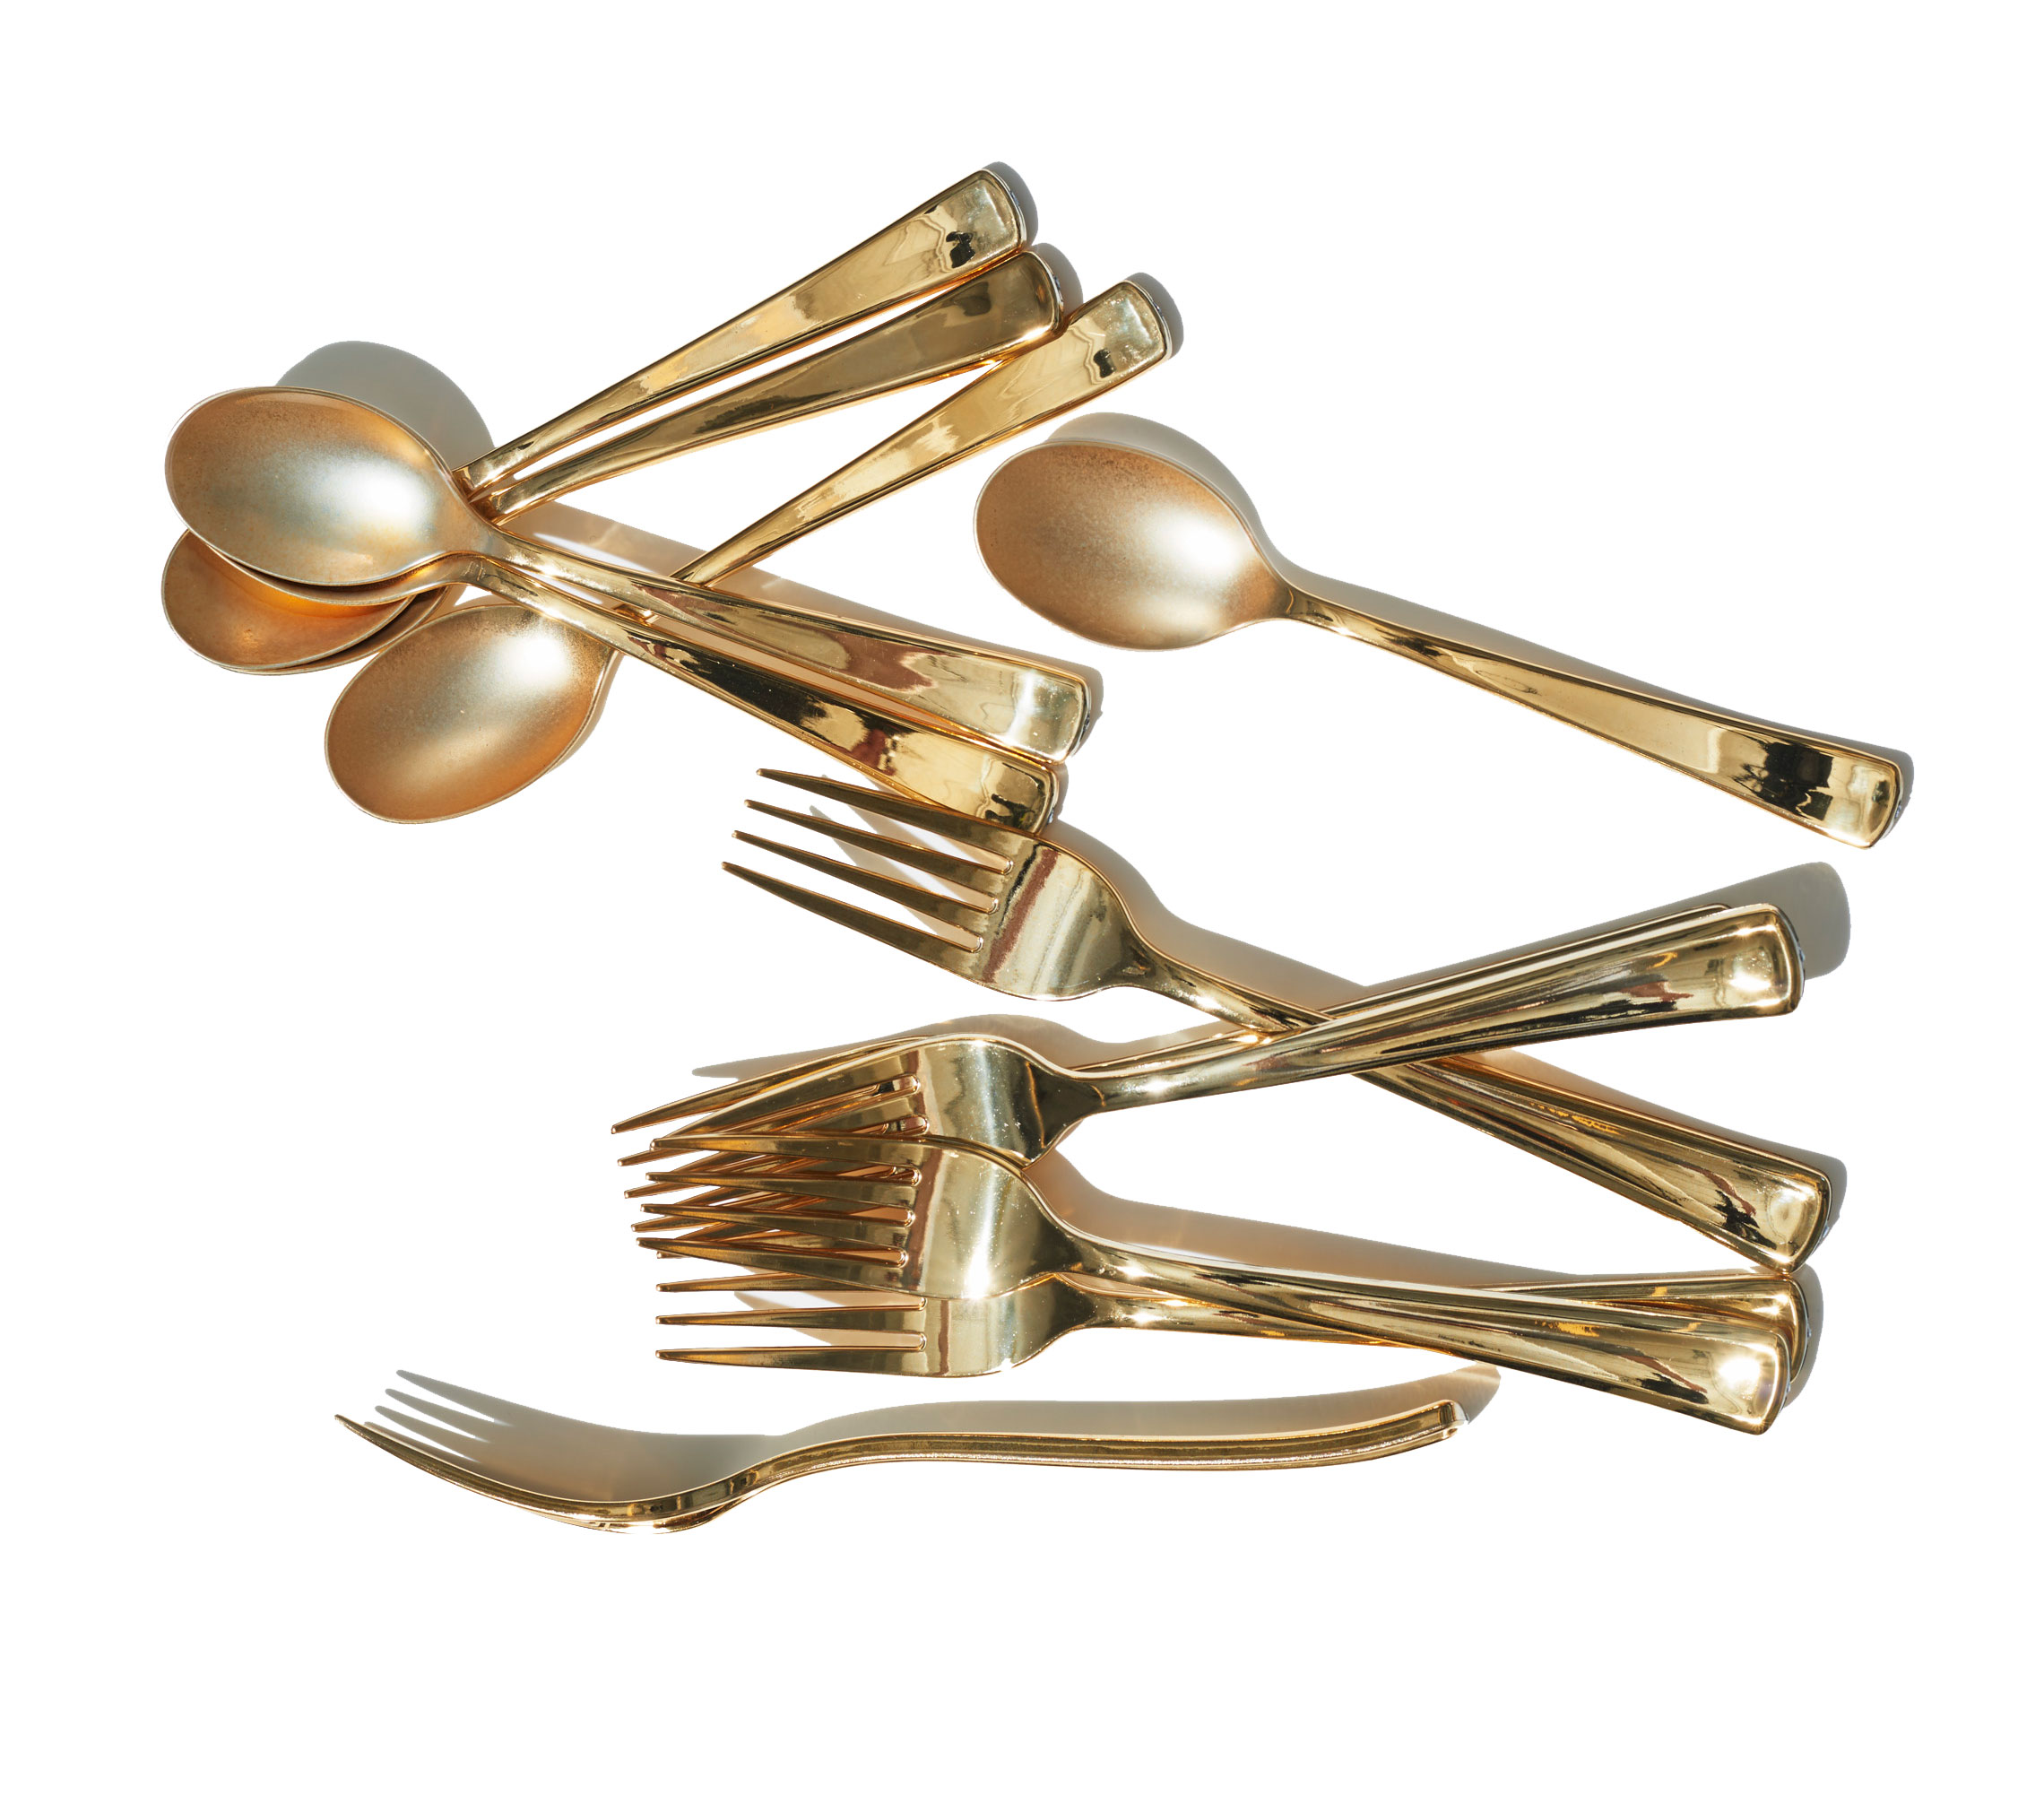 Elegant gold plastic silverware with glitters gold plastic silverware for serverware ideas